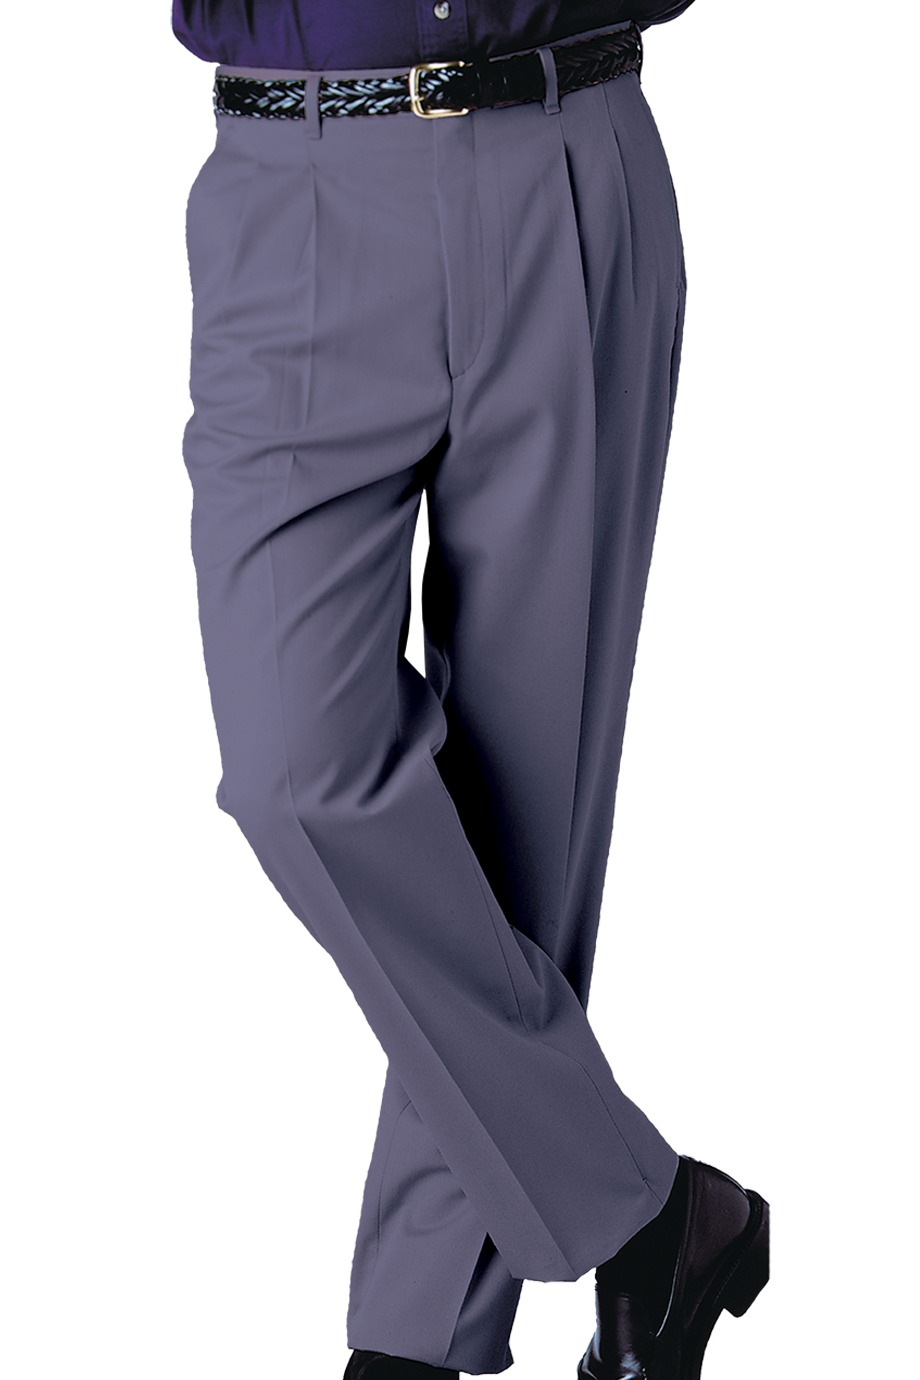 c9face5225b Edwards Garment 2610 - Men s Business Casual Pleated Pant  25.28 ...